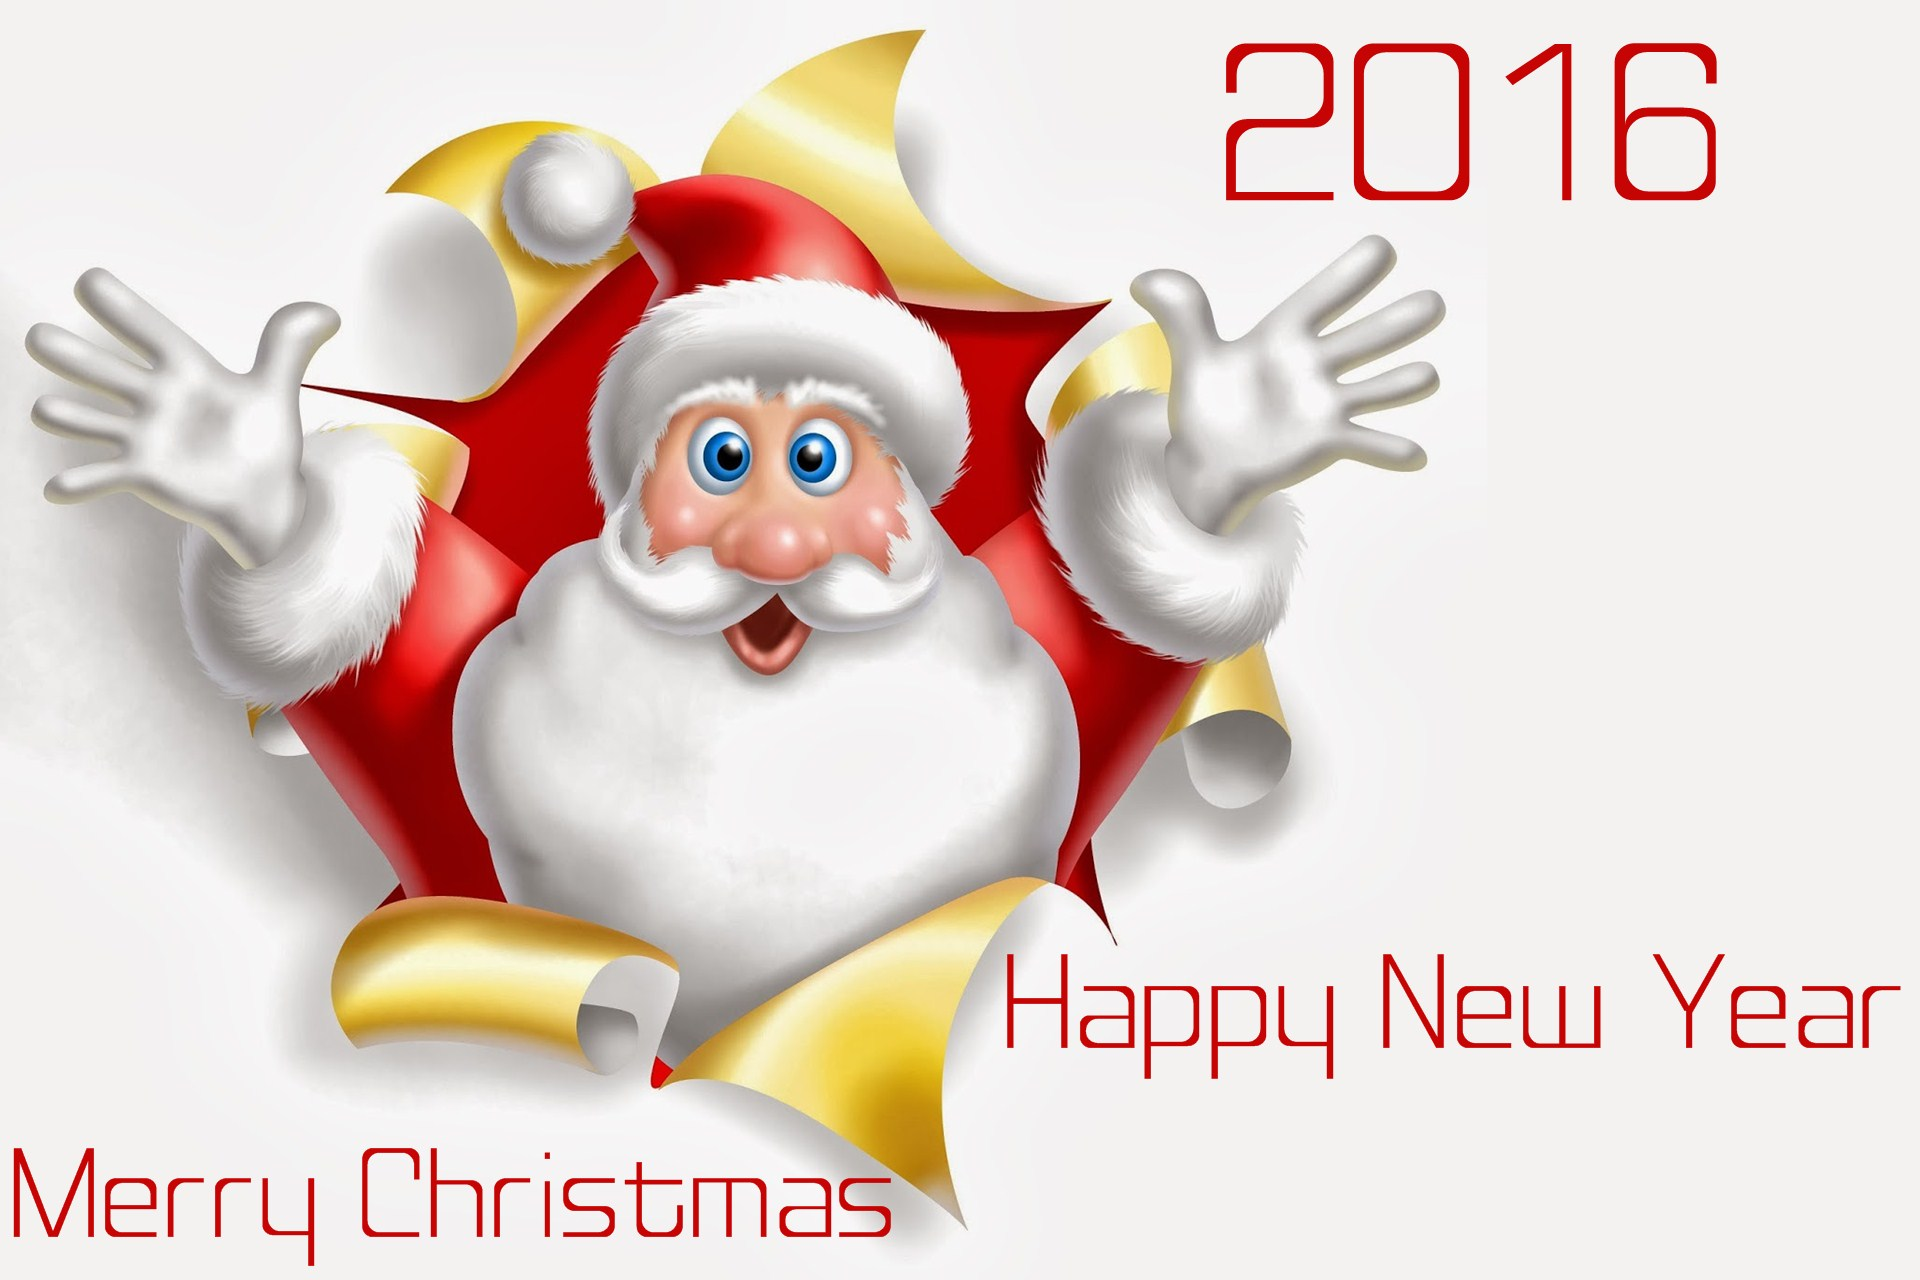 Christmas 2016 wishes images sayings and messages for whatsapp christmas 2016 wishes images messages for whatsapp m4hsunfo